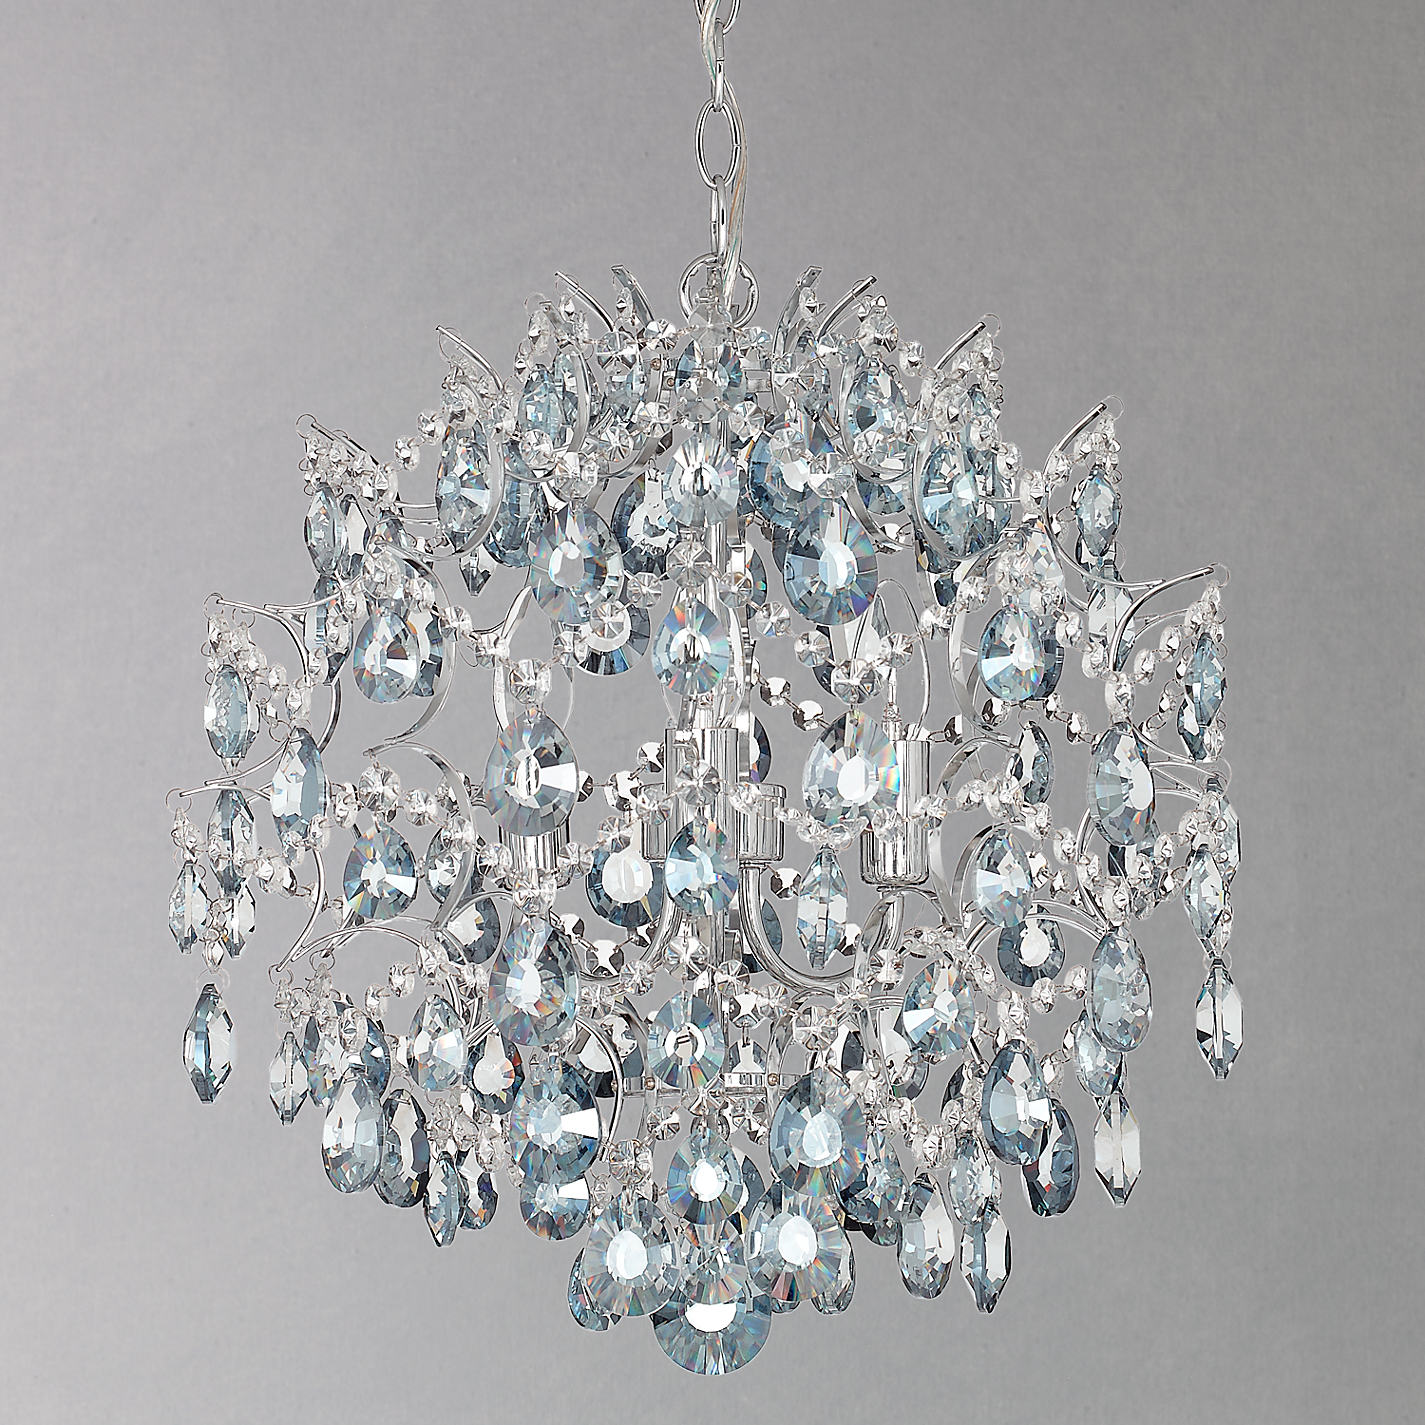 Buy john lewis baroque crystal chandelier john lewis buy john lewis baroque crystal chandelier online at johnlewis mozeypictures Images